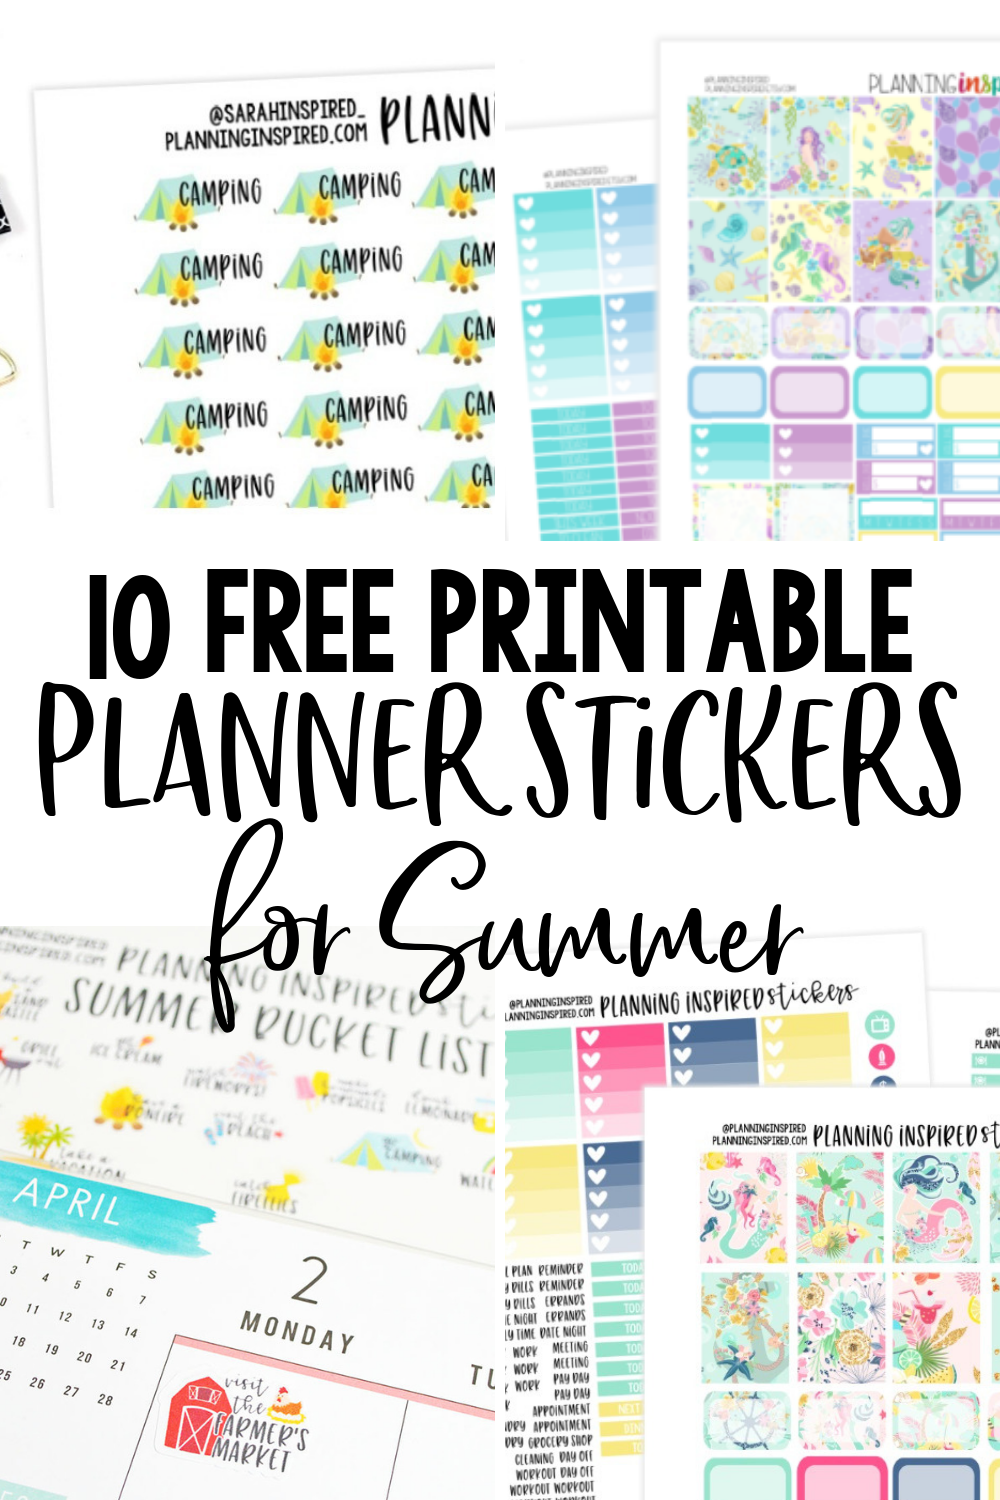 image regarding Printable Stickers Free named 10 Totally free Printable Planner Stickers for Summer months - Creating